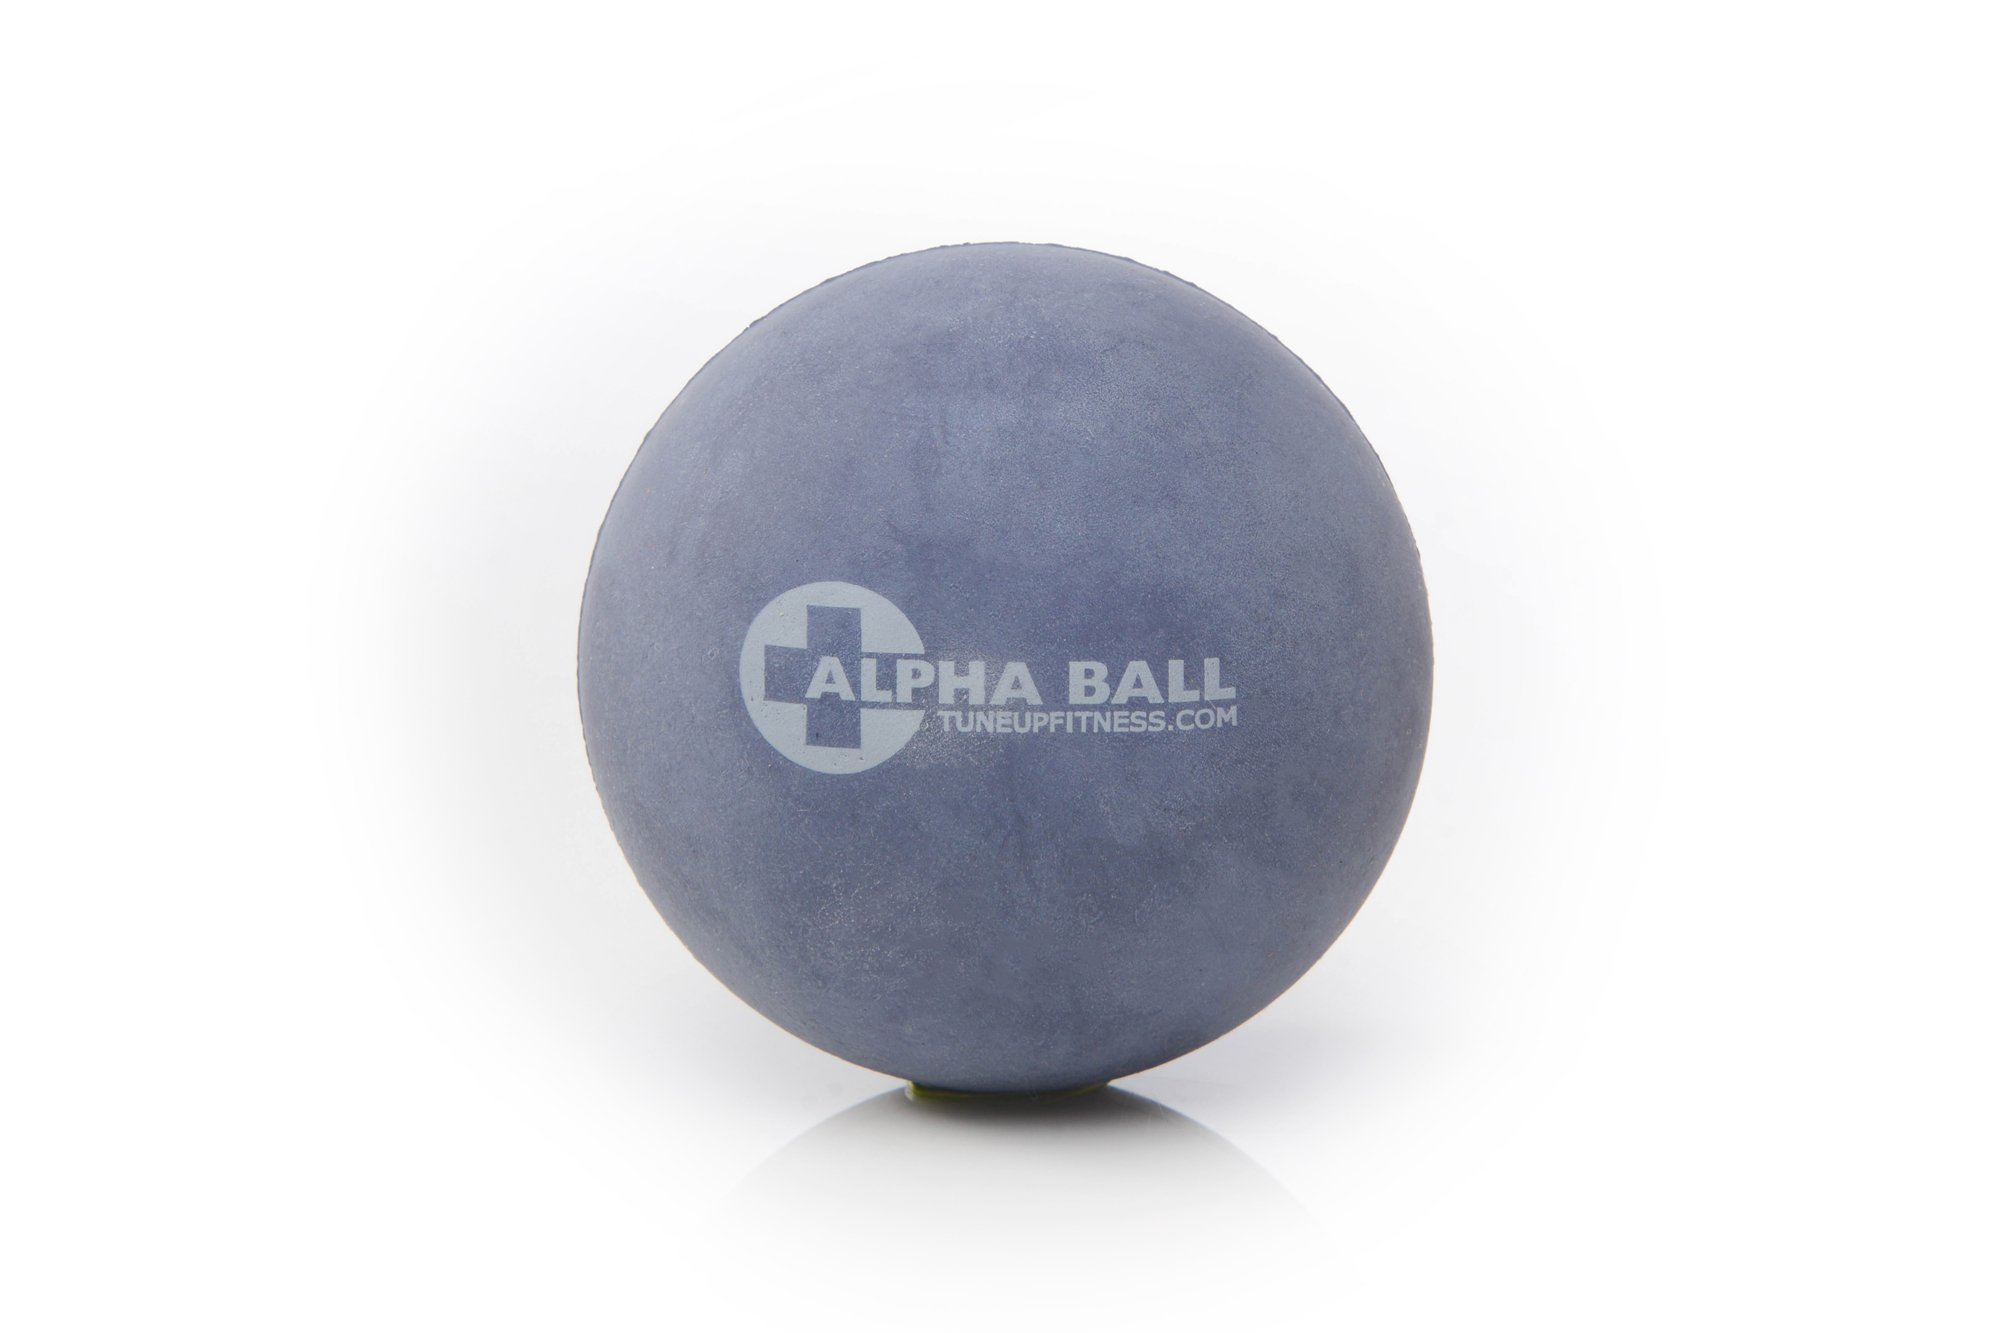 Tune Up Fitness Alpha Therapy Ball, Yoga Tune Up and The Roll Model Method, Self-Massage to Improve Mobility, Increase Athletic Performance, Myofascial Release, Trigger Point Therapy by Tune Up Fitness